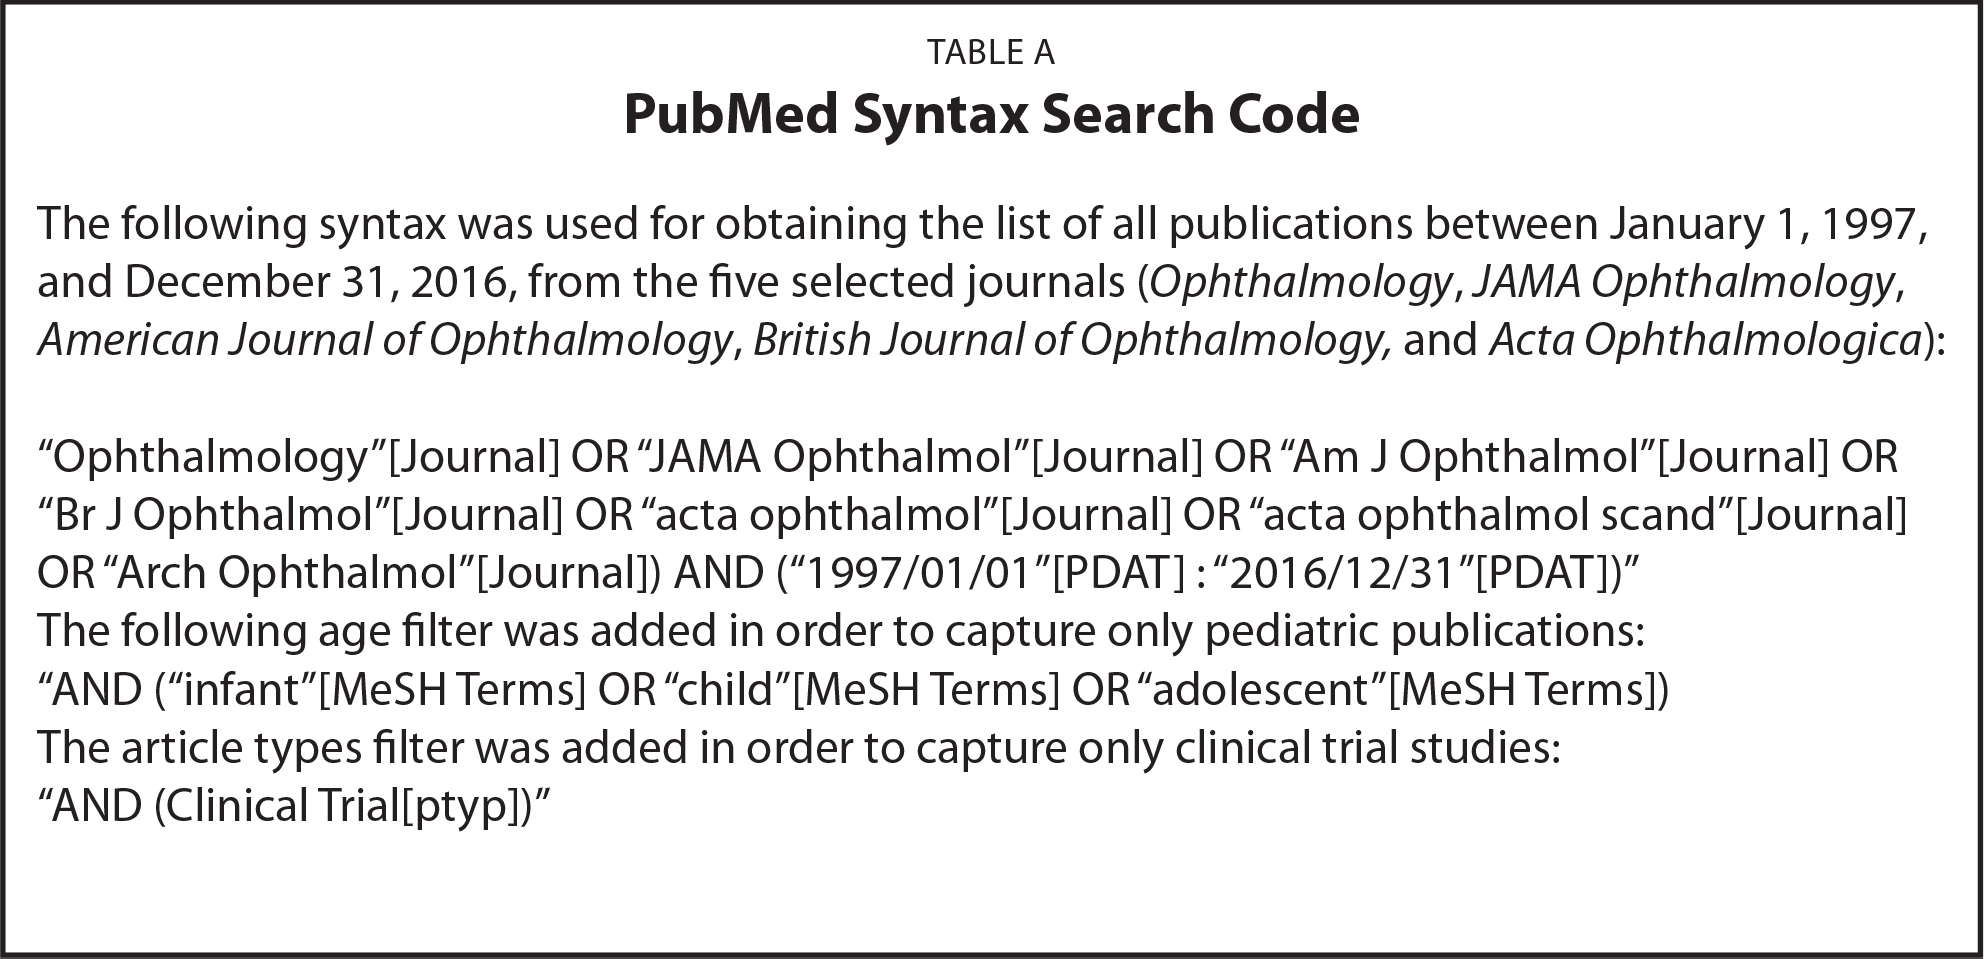 PubMed Syntax Search Code